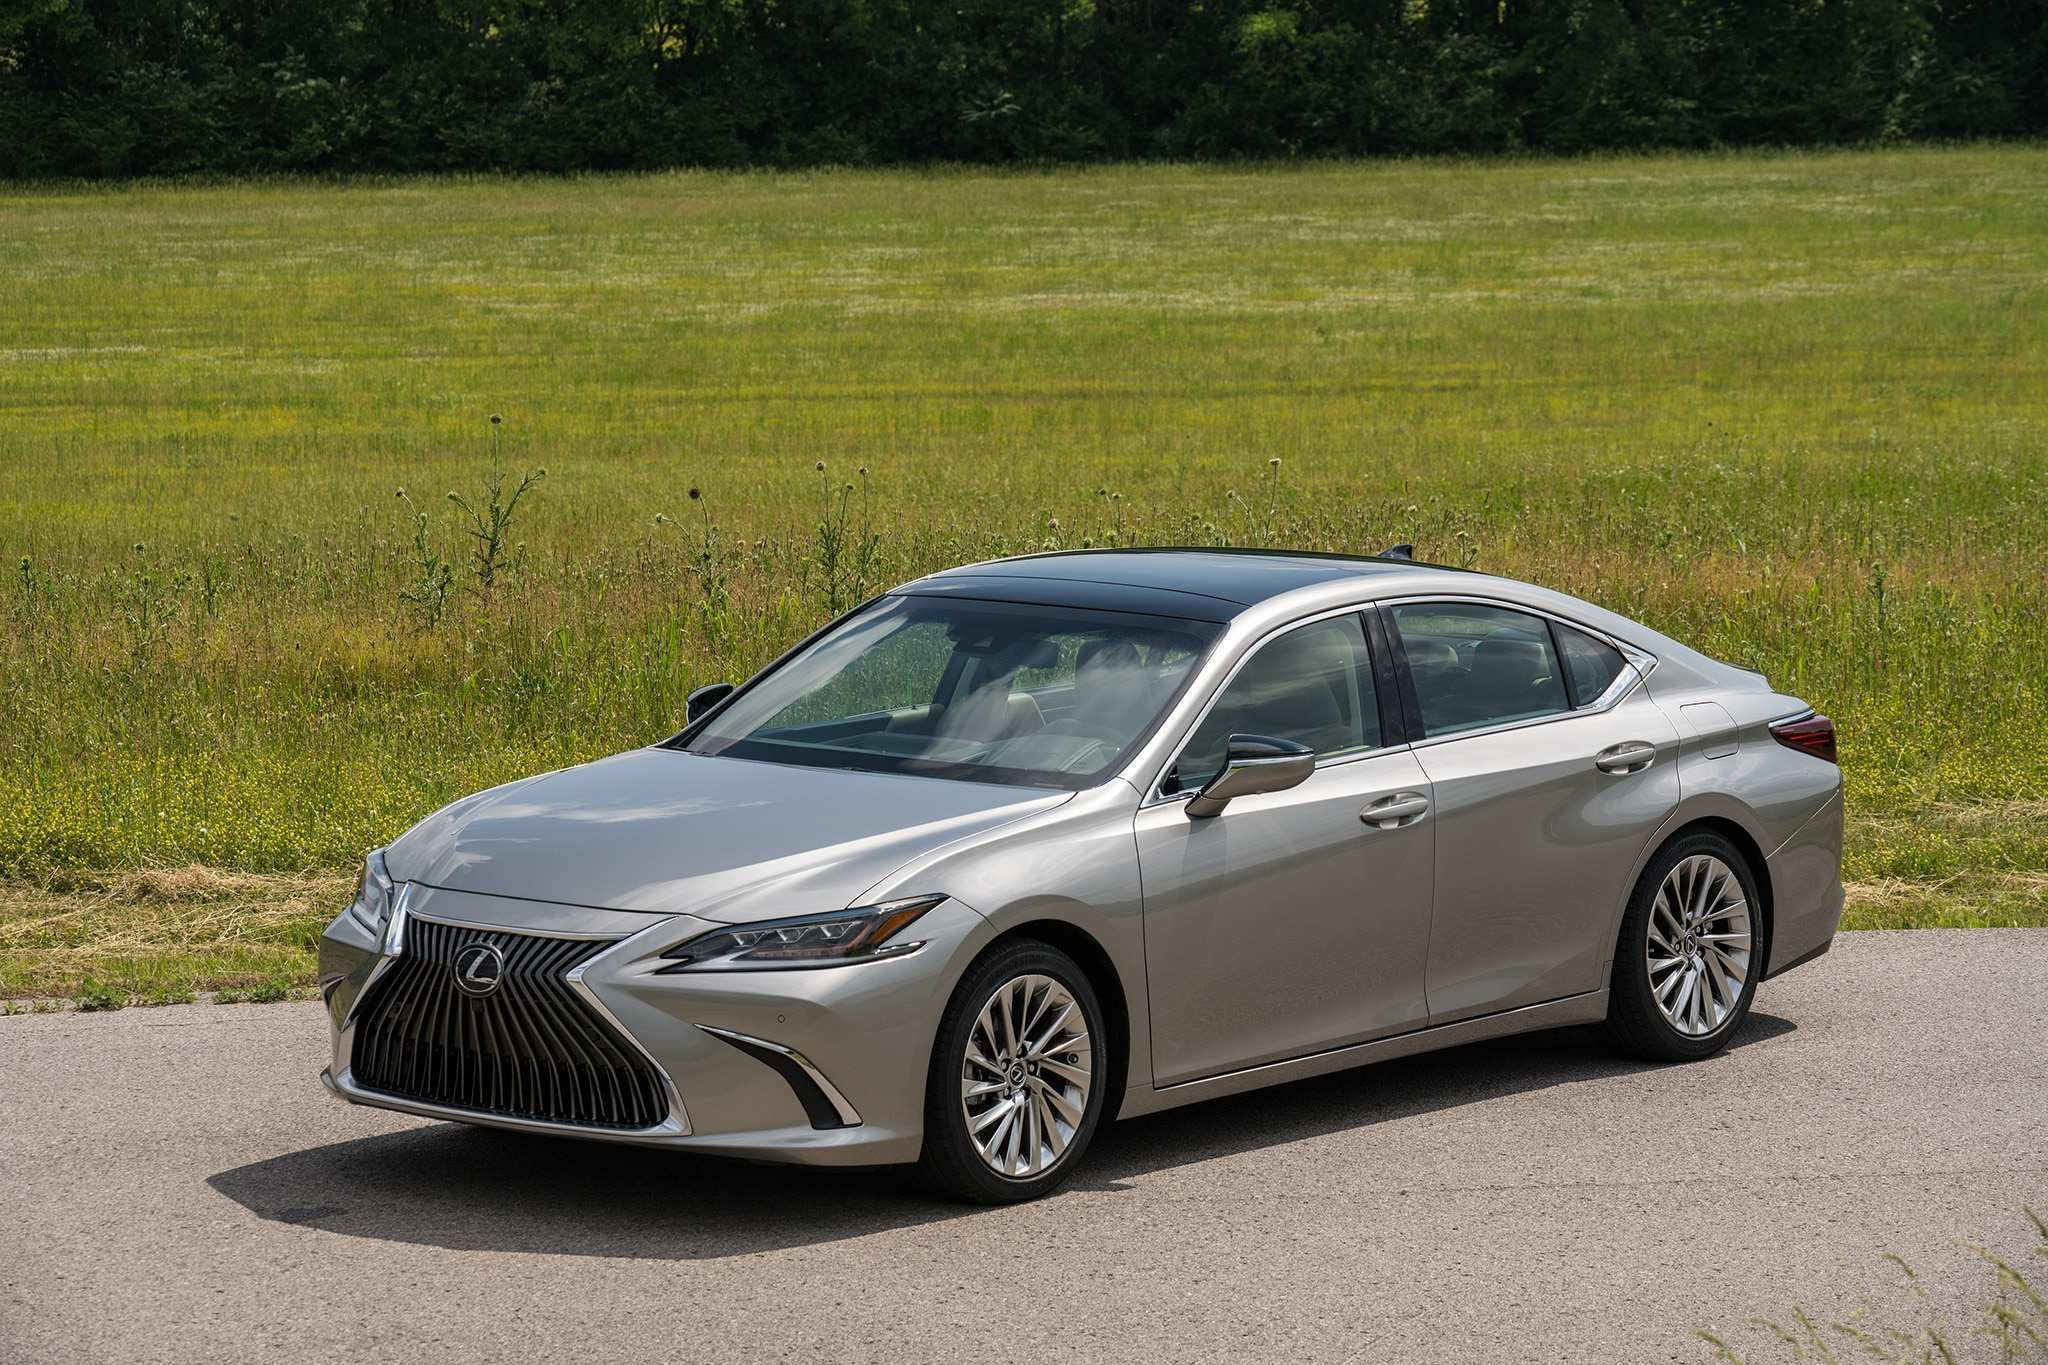 75 Best Review 2019 Lexus 350 Es Release Date for 2019 Lexus 350 Es